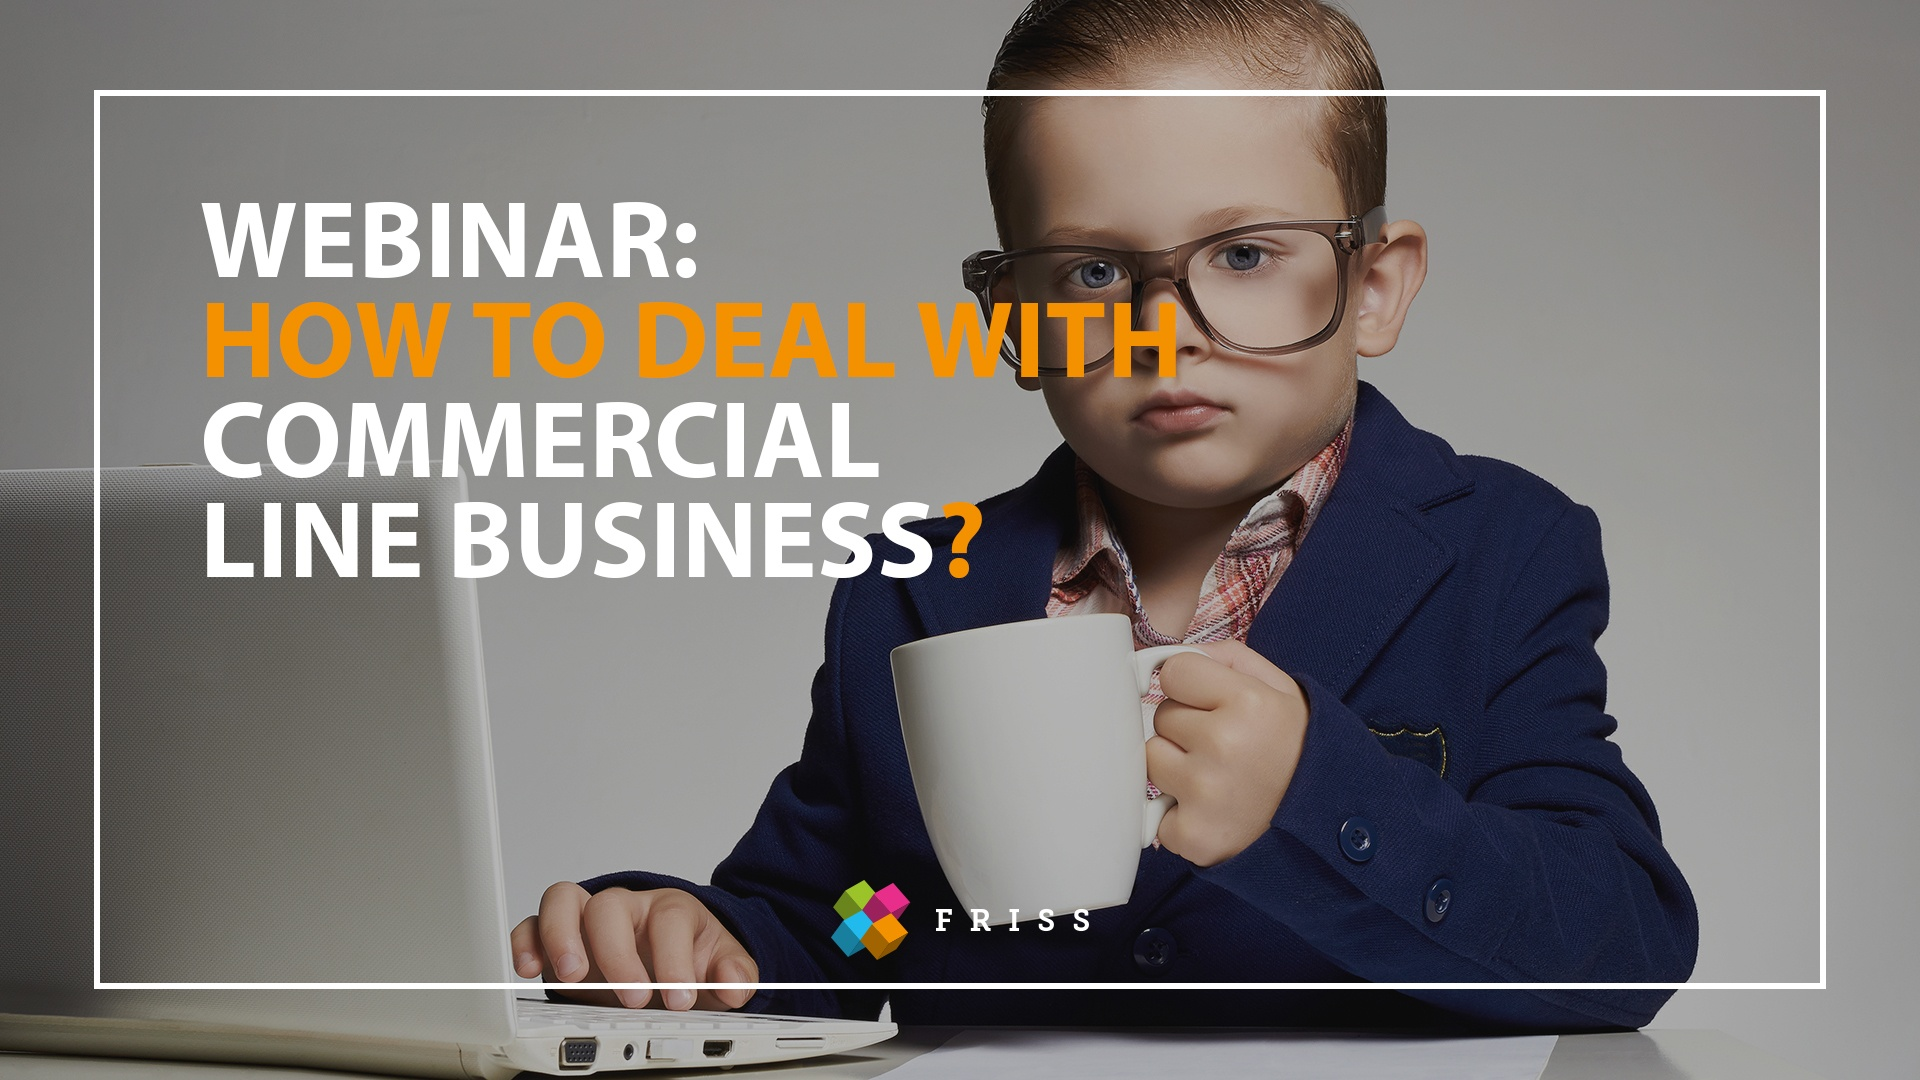 Webinar - How to deal with Commerical Line Business?